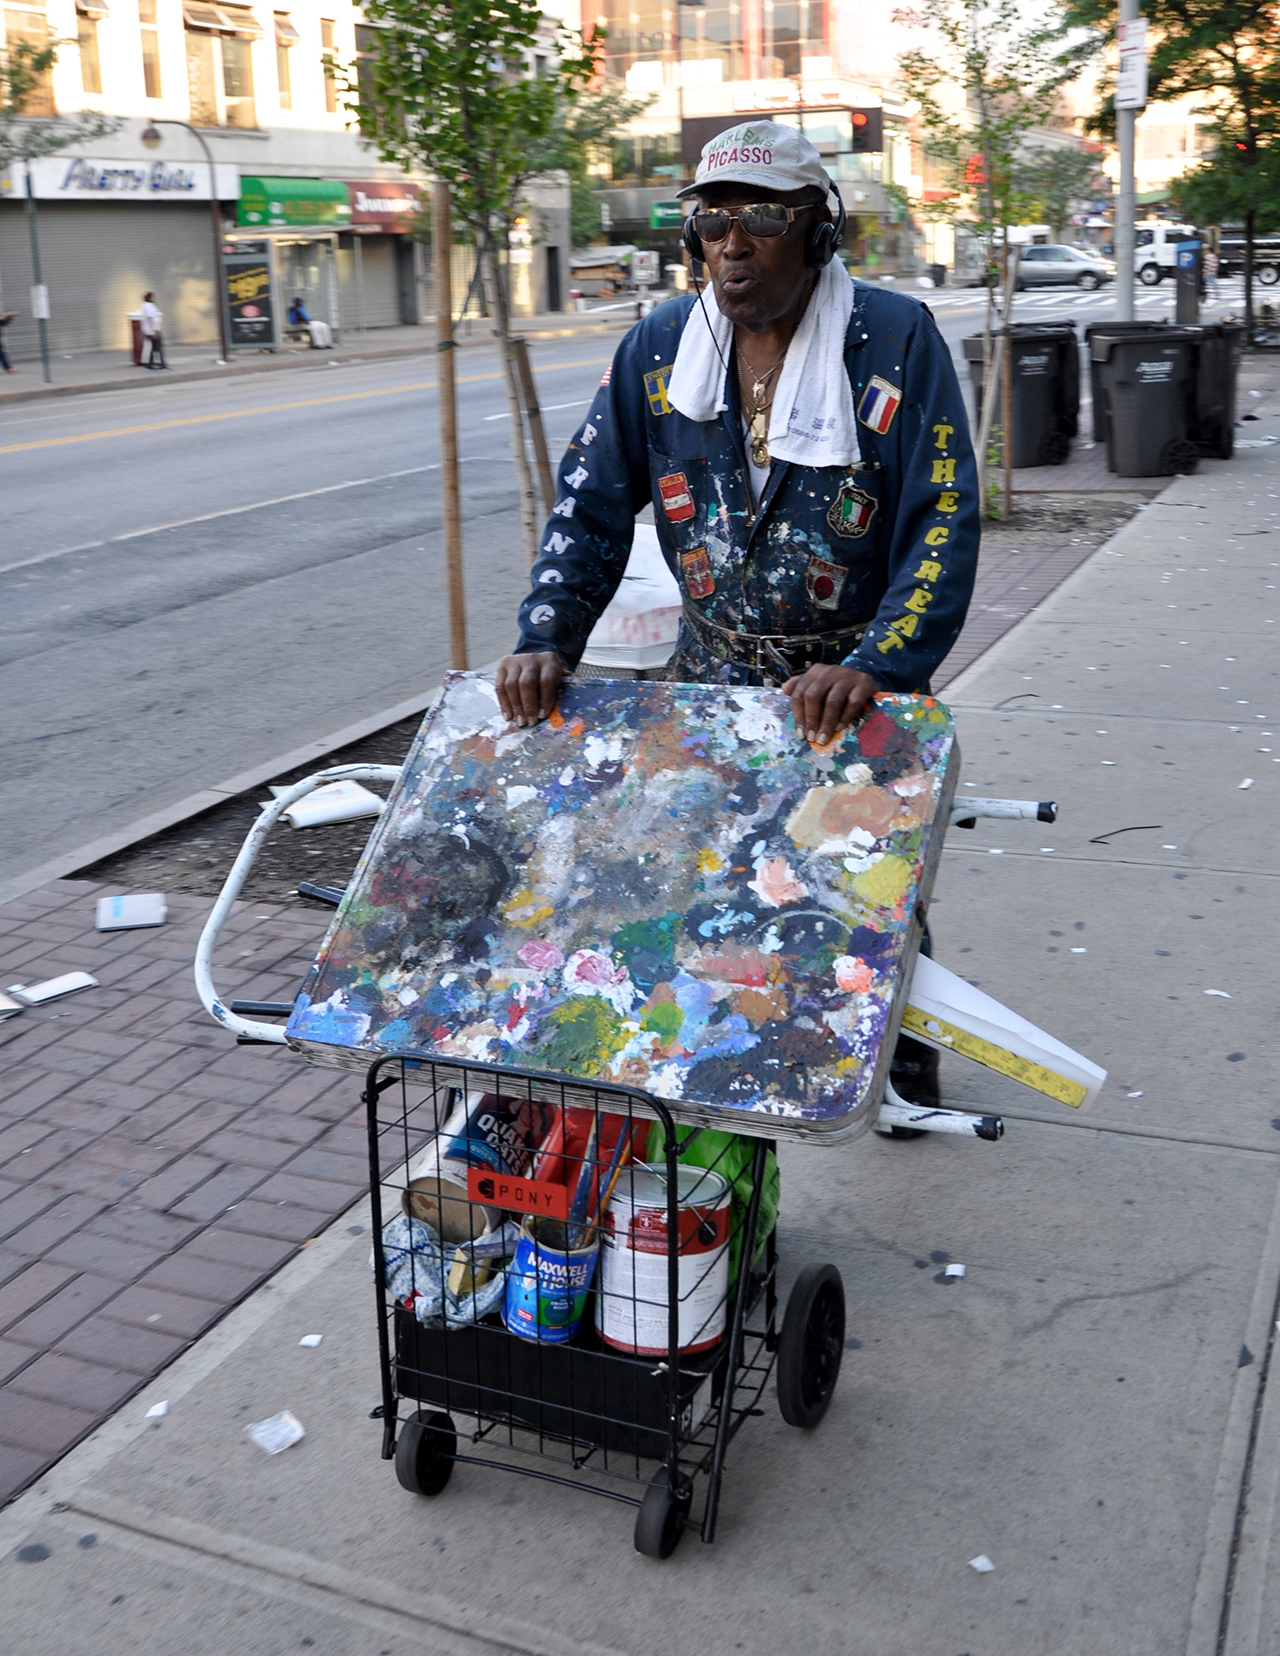 Franco the Great, aka the Picasso of Harlem, aka Franco Gaskin, on his way to work (photo by the author for Hyperallergic)